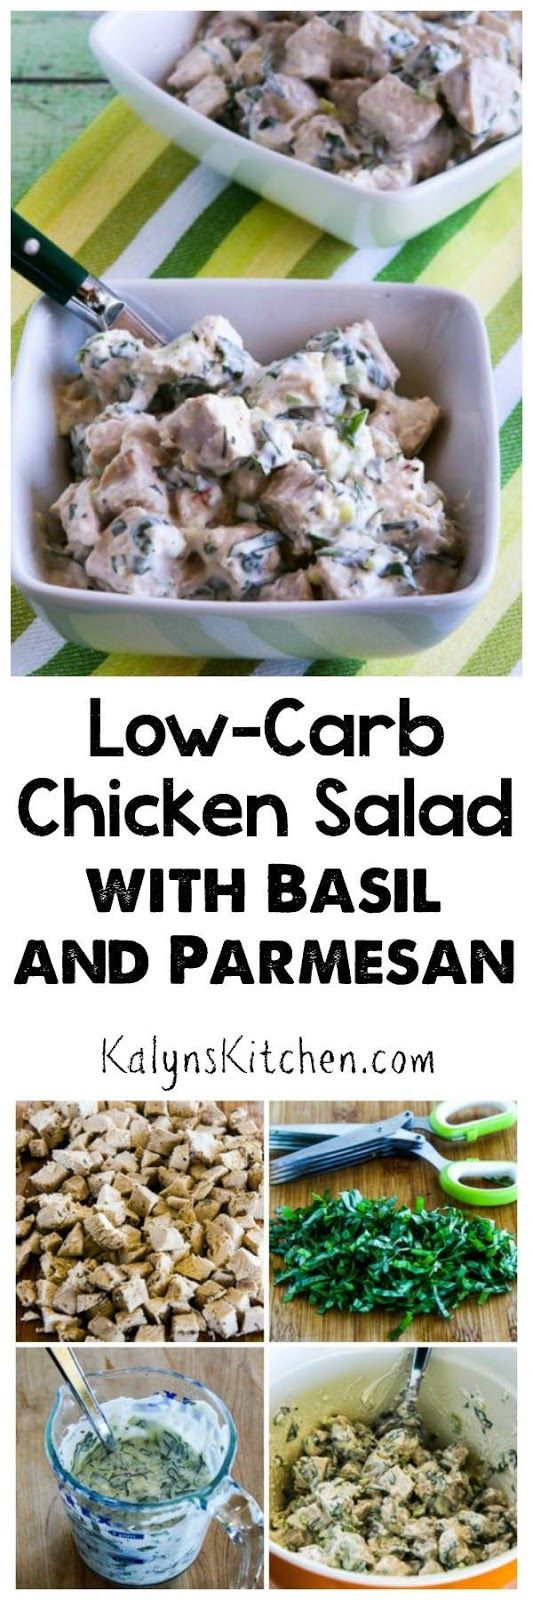 If you have fresh basil in the garden, you MUST make this amazing Low-Carb Chicken Salad with Basil and Parmesan; this tasty salad is also gluten-free and South Beach Diet friendly. [found on KalynsKitchen.com]